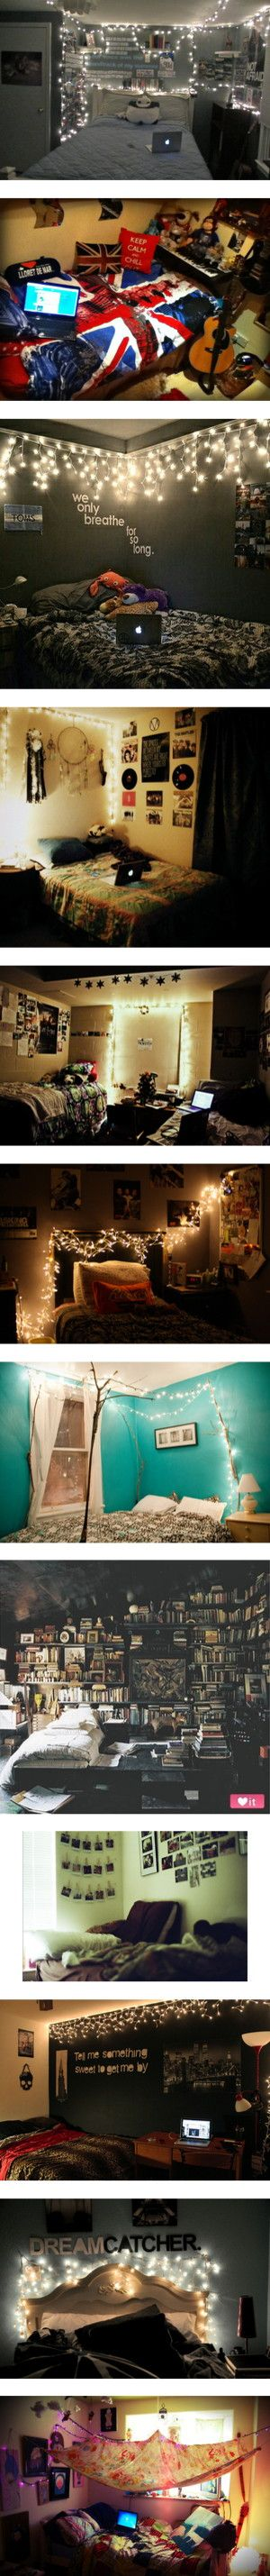 """Indie/Hipster Bedroom Inspiration"" by for-the-love-of-tips ❤ liked on Polyvore"